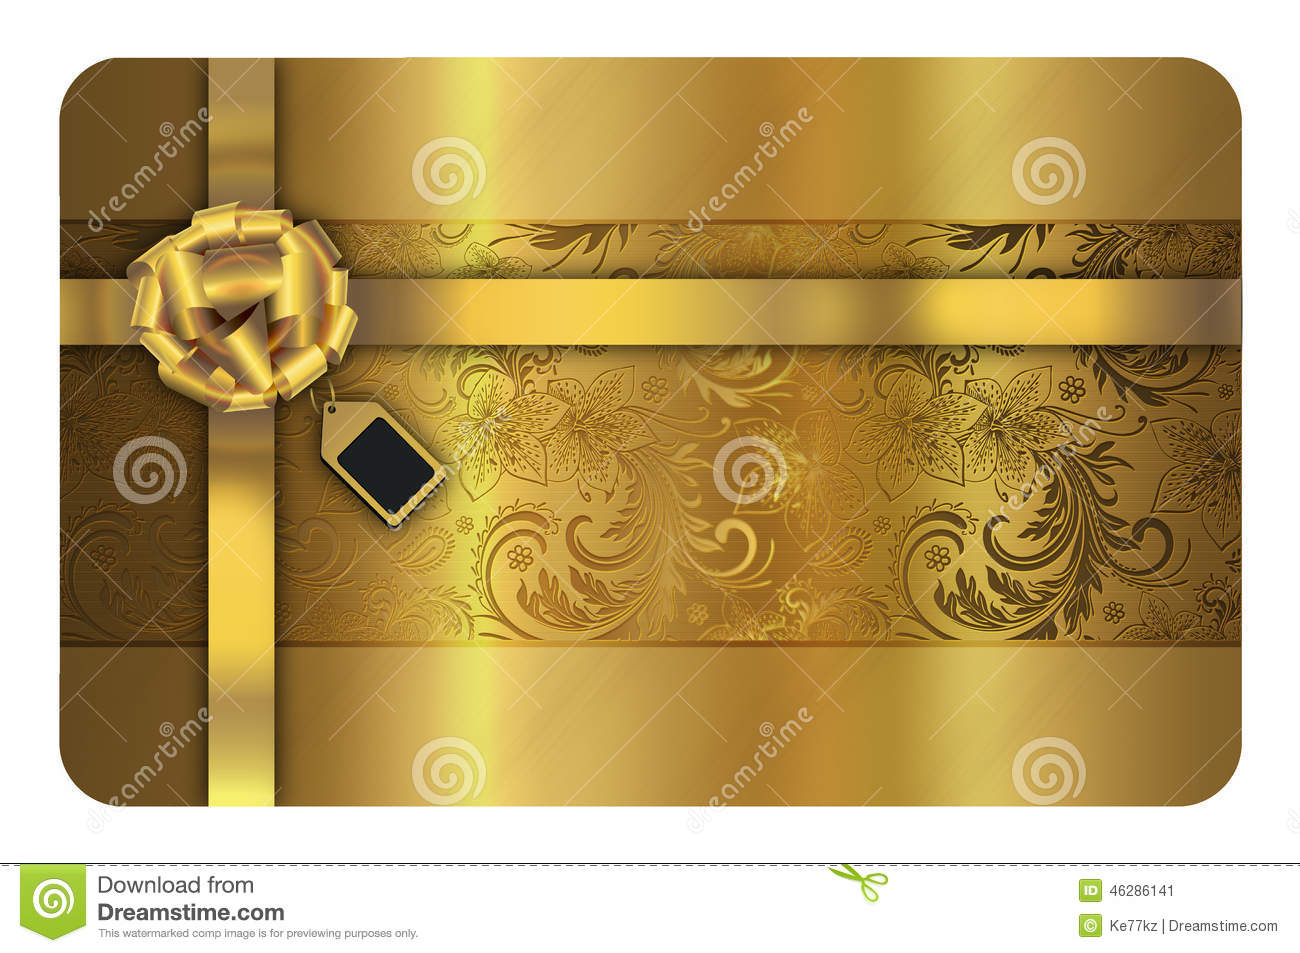 Gold business or gift card template stock illustration image royalty free illustration download gold business or gift card magicingreecefo Image collections